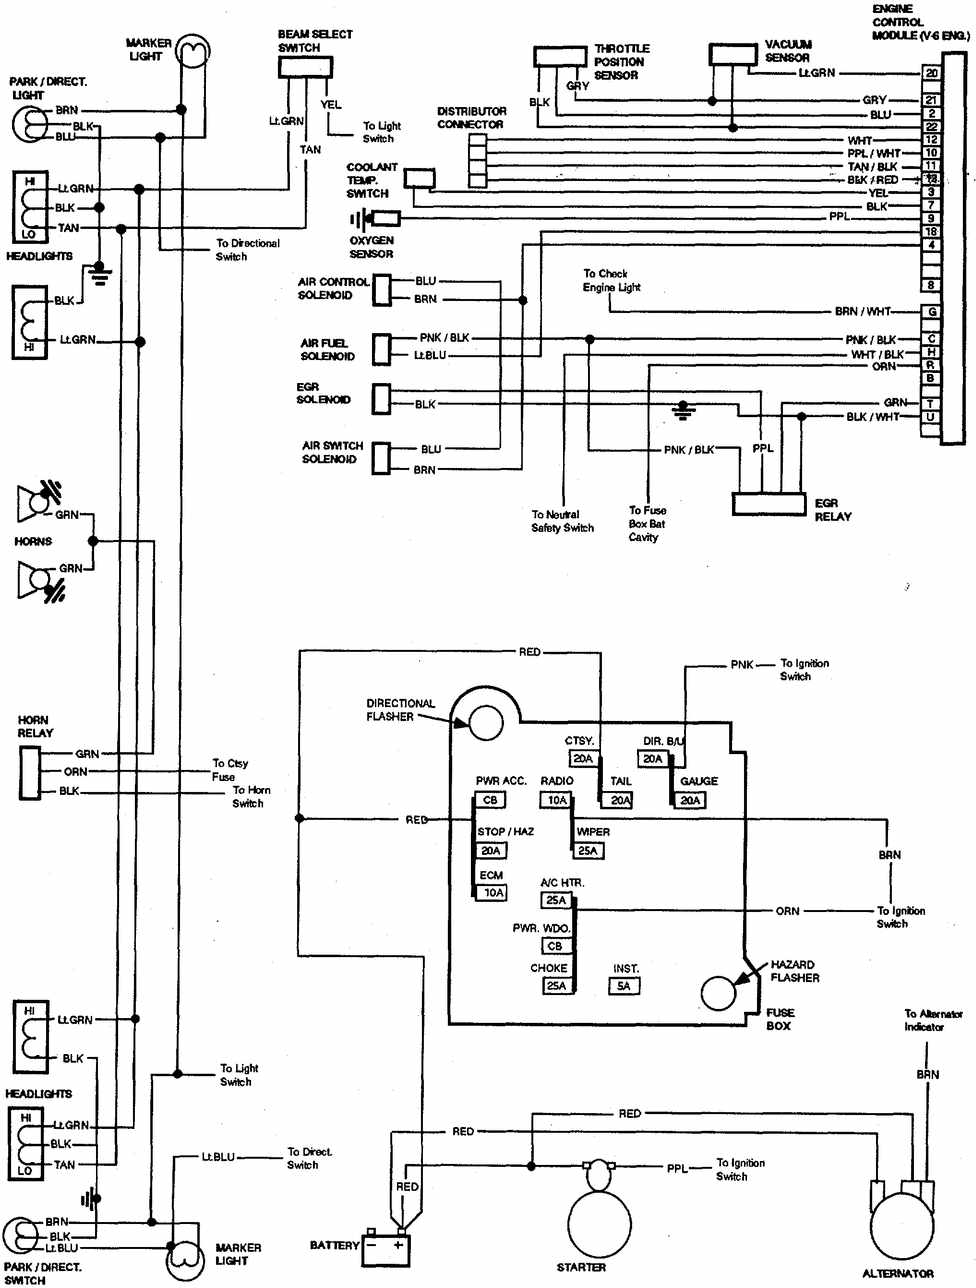 diagrama de cableado older furnace 7 5 ton